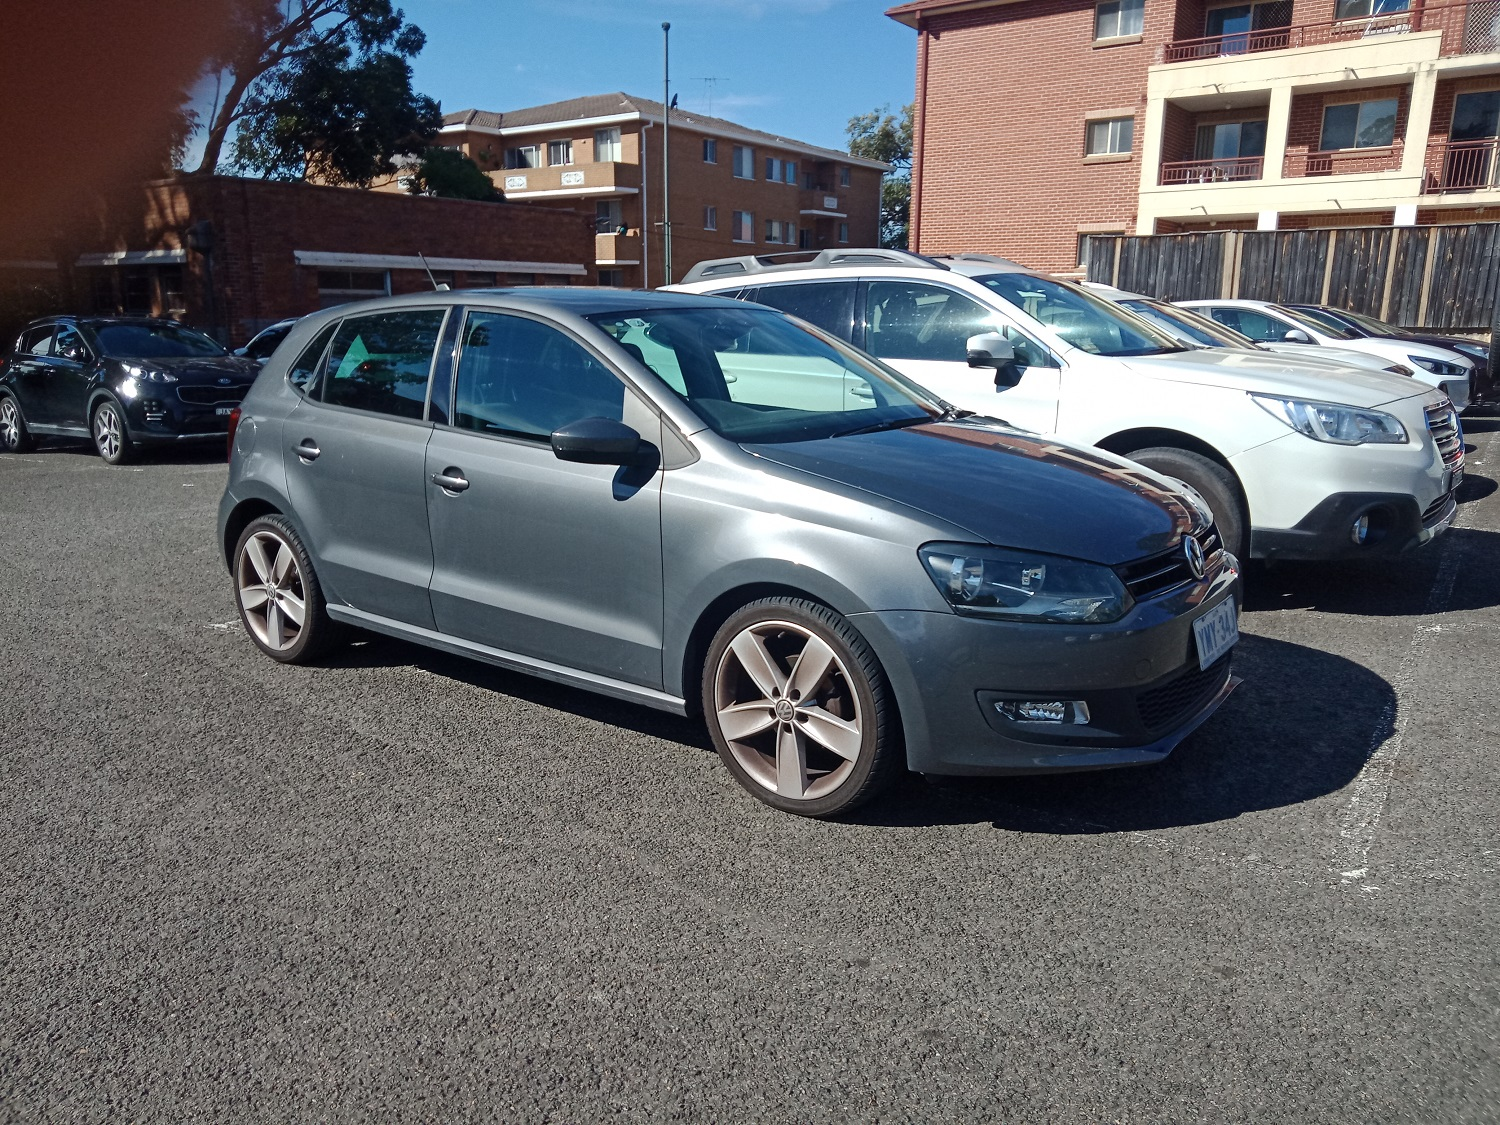 Picture of Abid's 2013 Volkswagen Polo